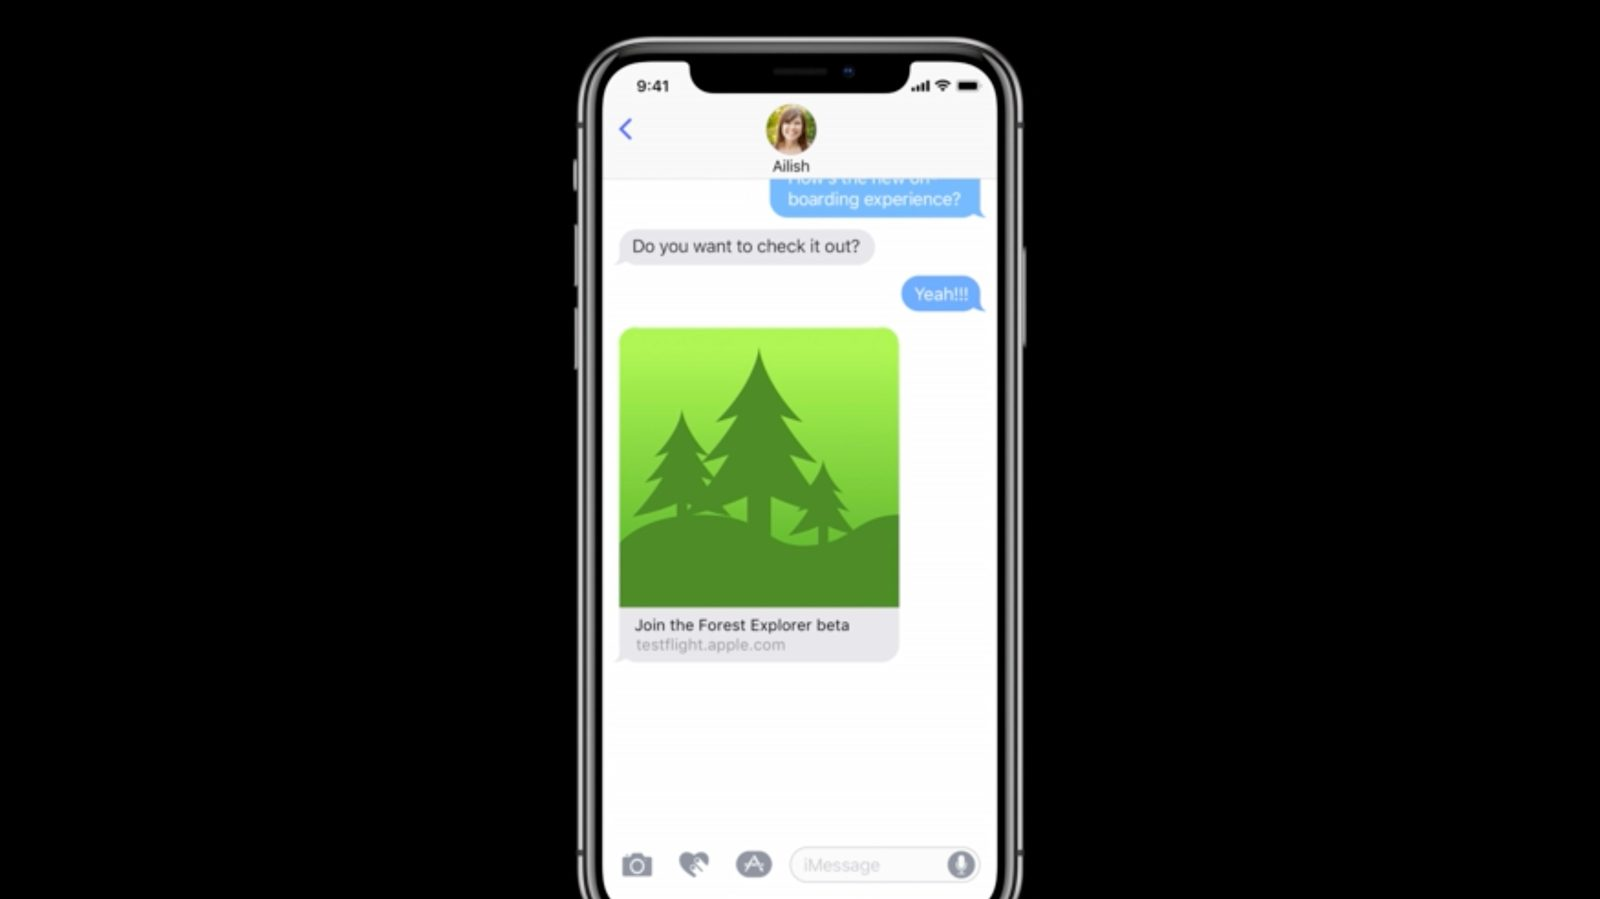 Apple introduces new 'TestFlight Public Link' feature for